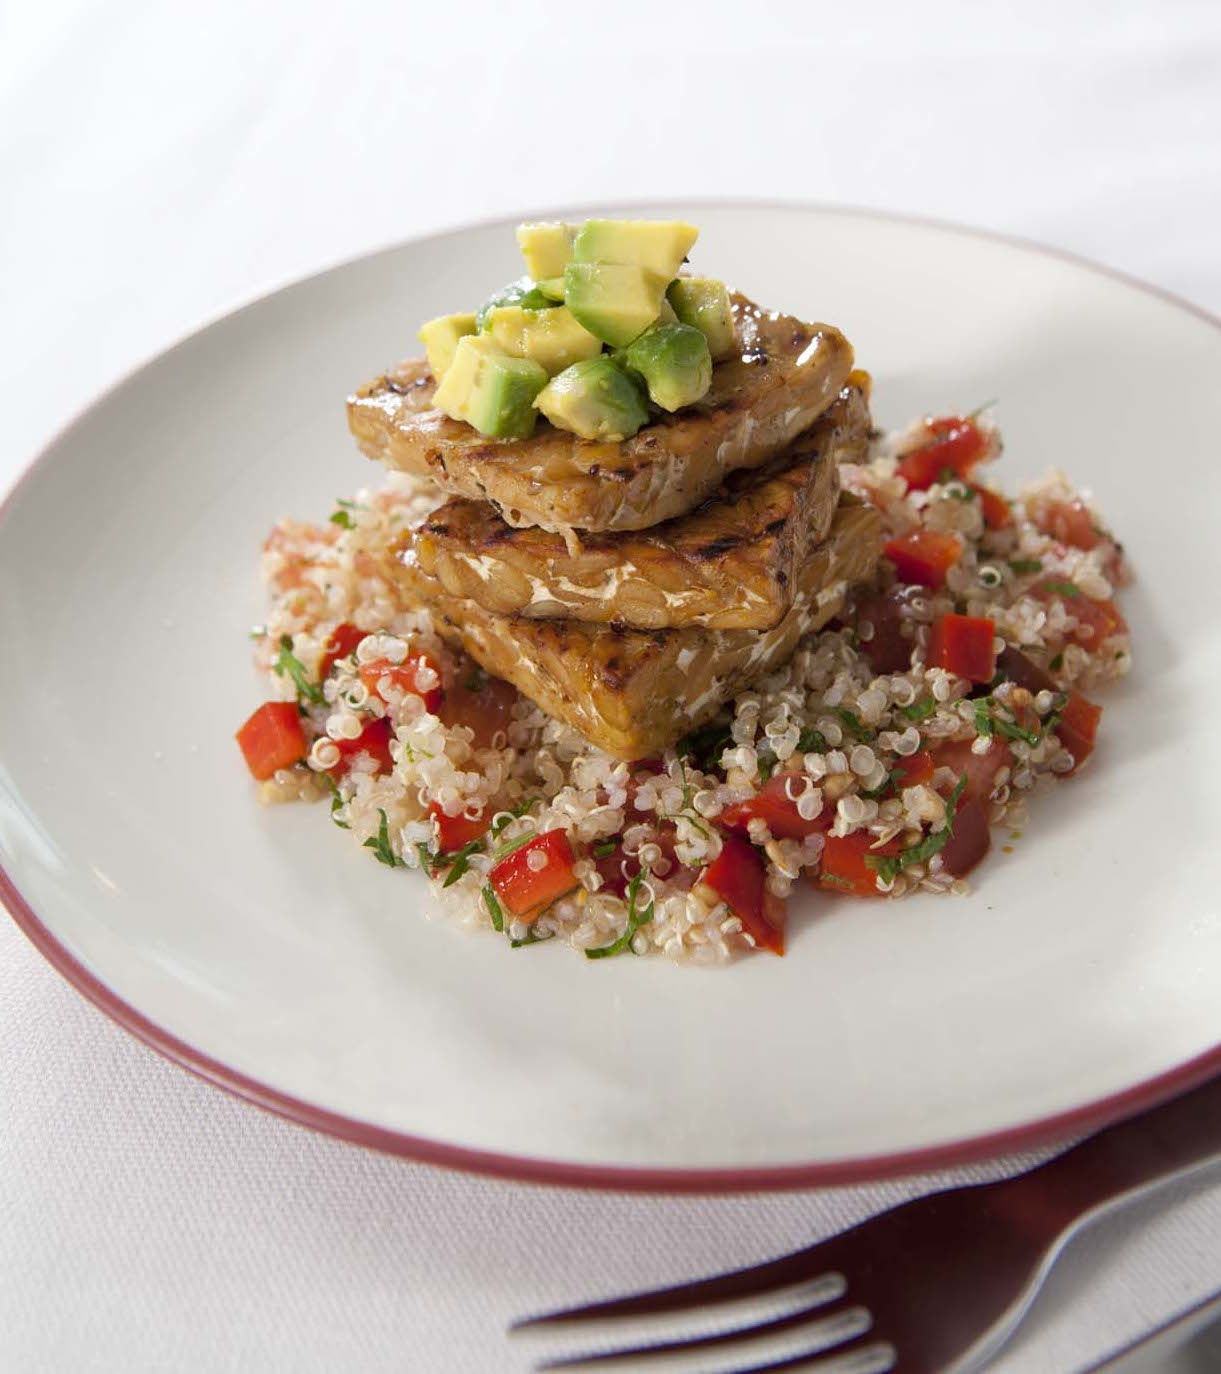 chargrilled-marinade-tempeh-with-avocado-salsa-and-summer-quinoa-salad-sydney-vegetarian-cookingclass-vegan-glutenfree-cookingschool-healthy.jpg